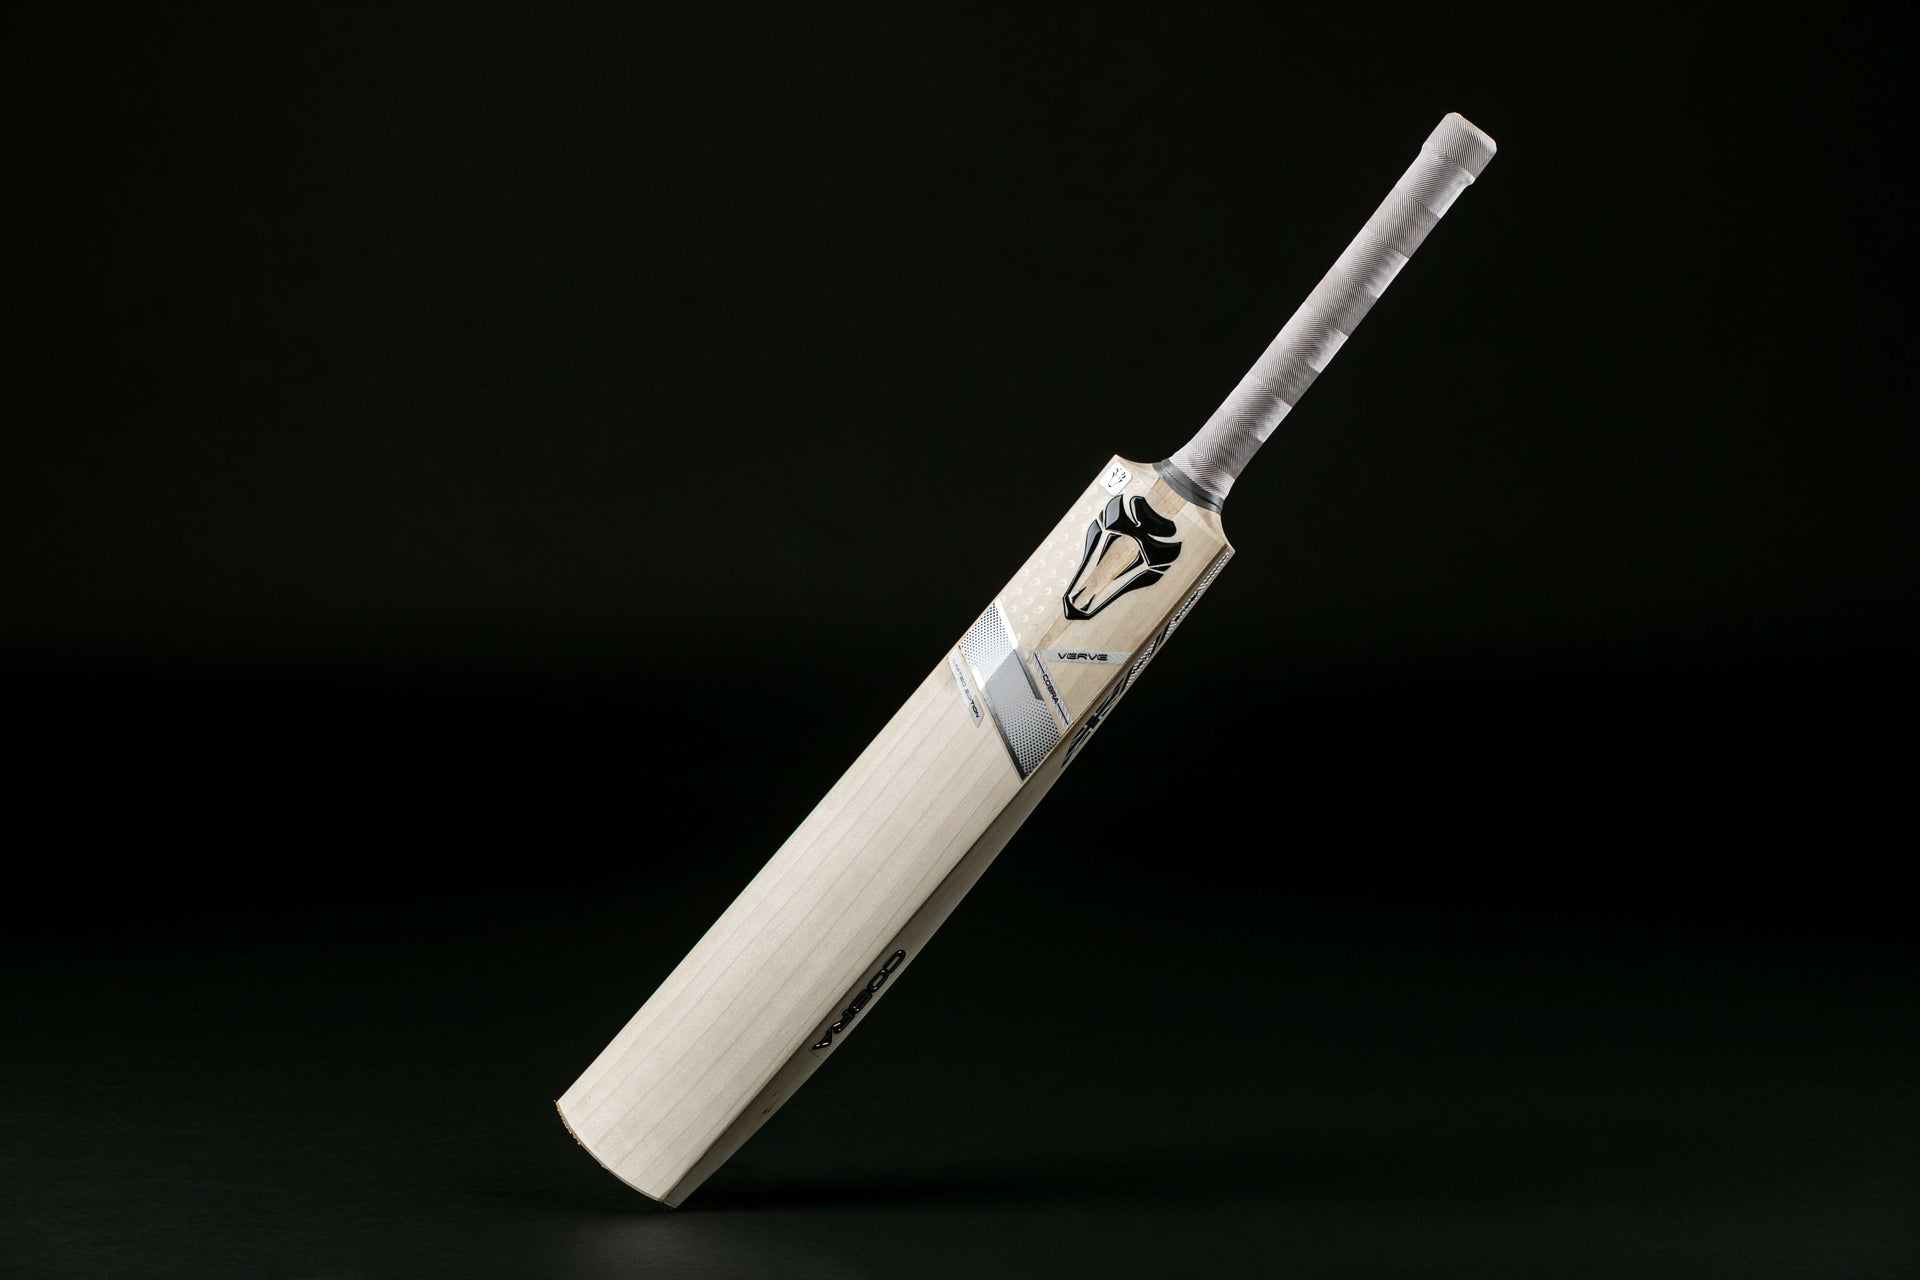 COBRA VERVE CRICKET BAT